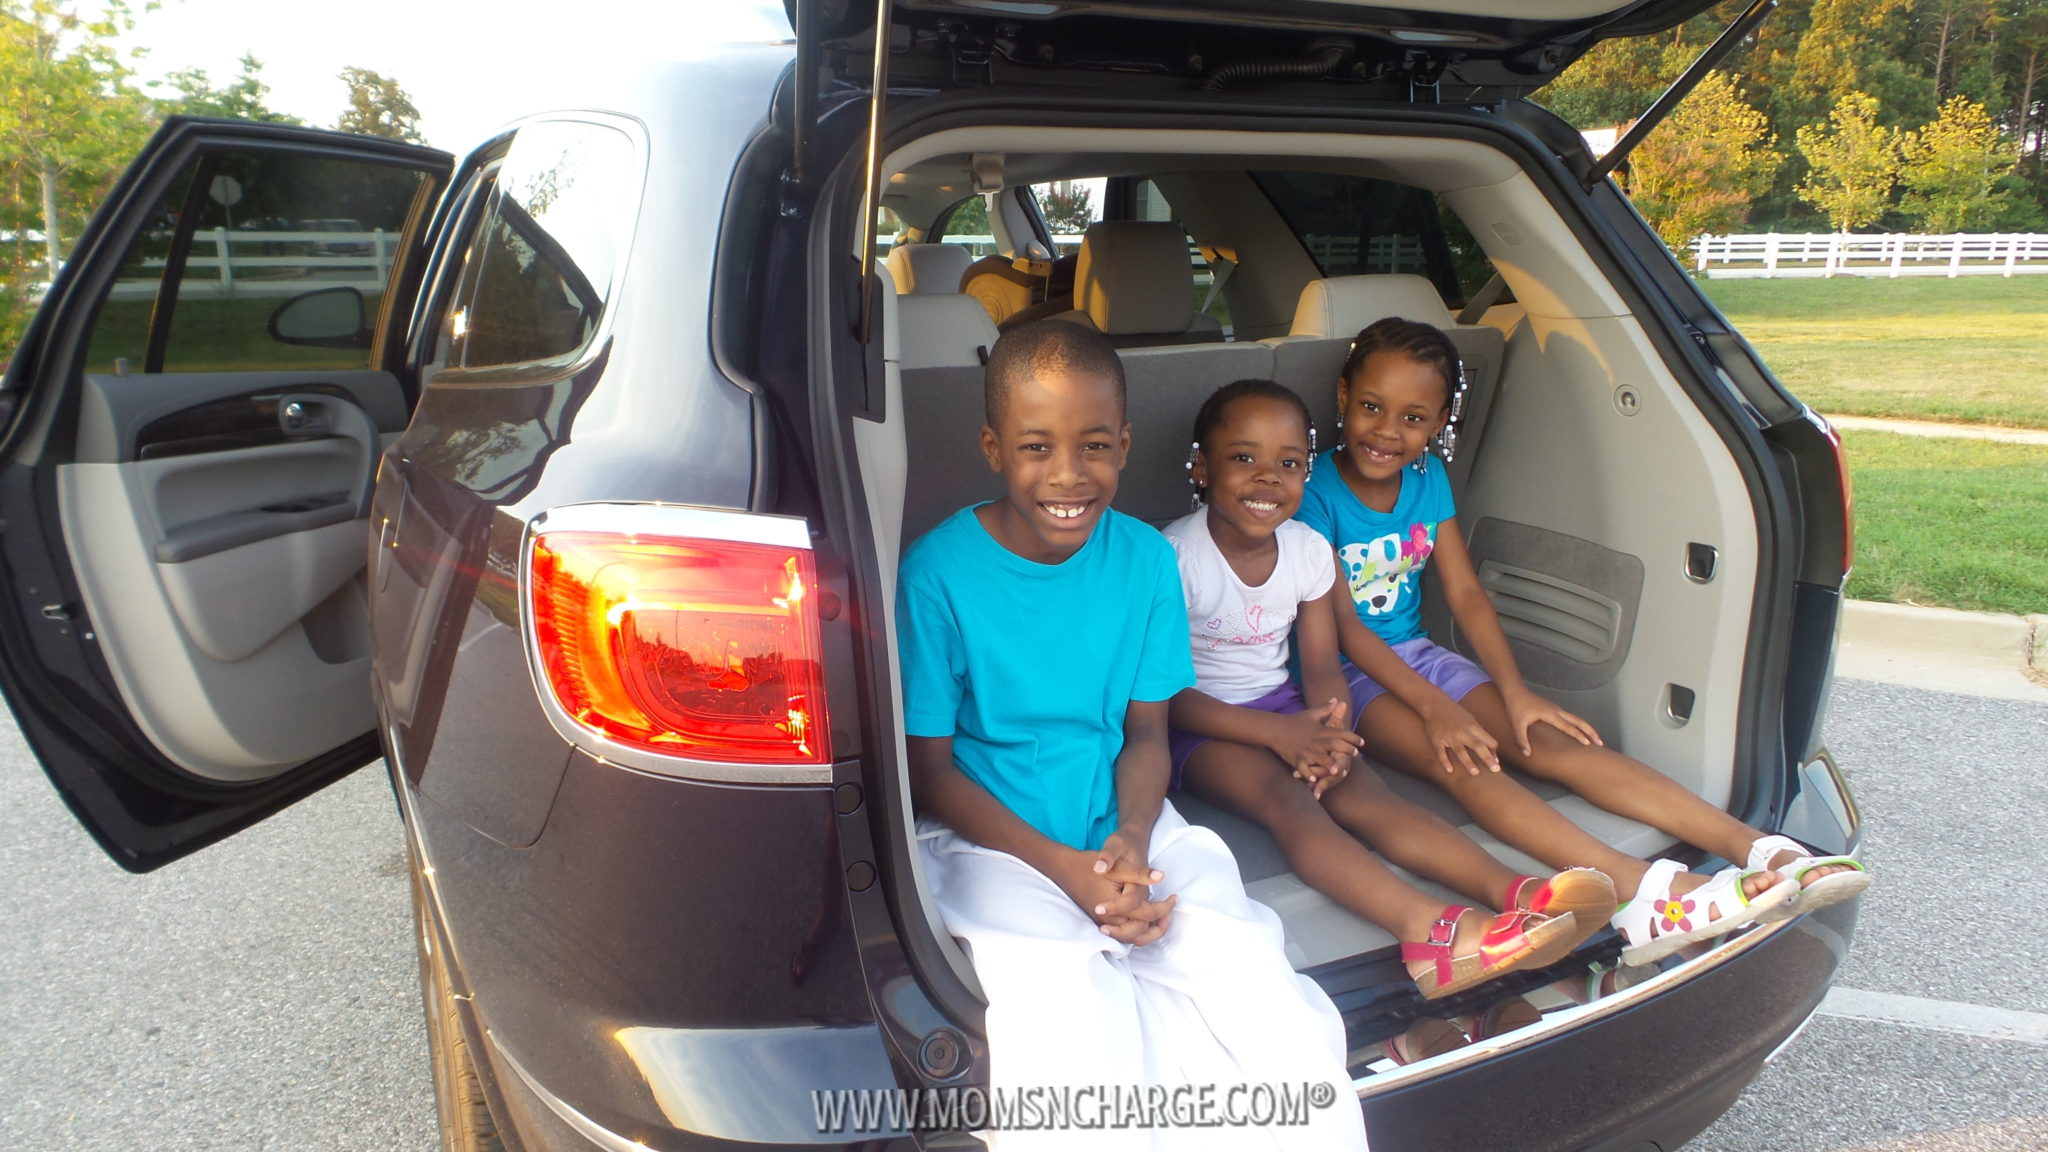 Buick Enclave Momsncharge Car Review 8